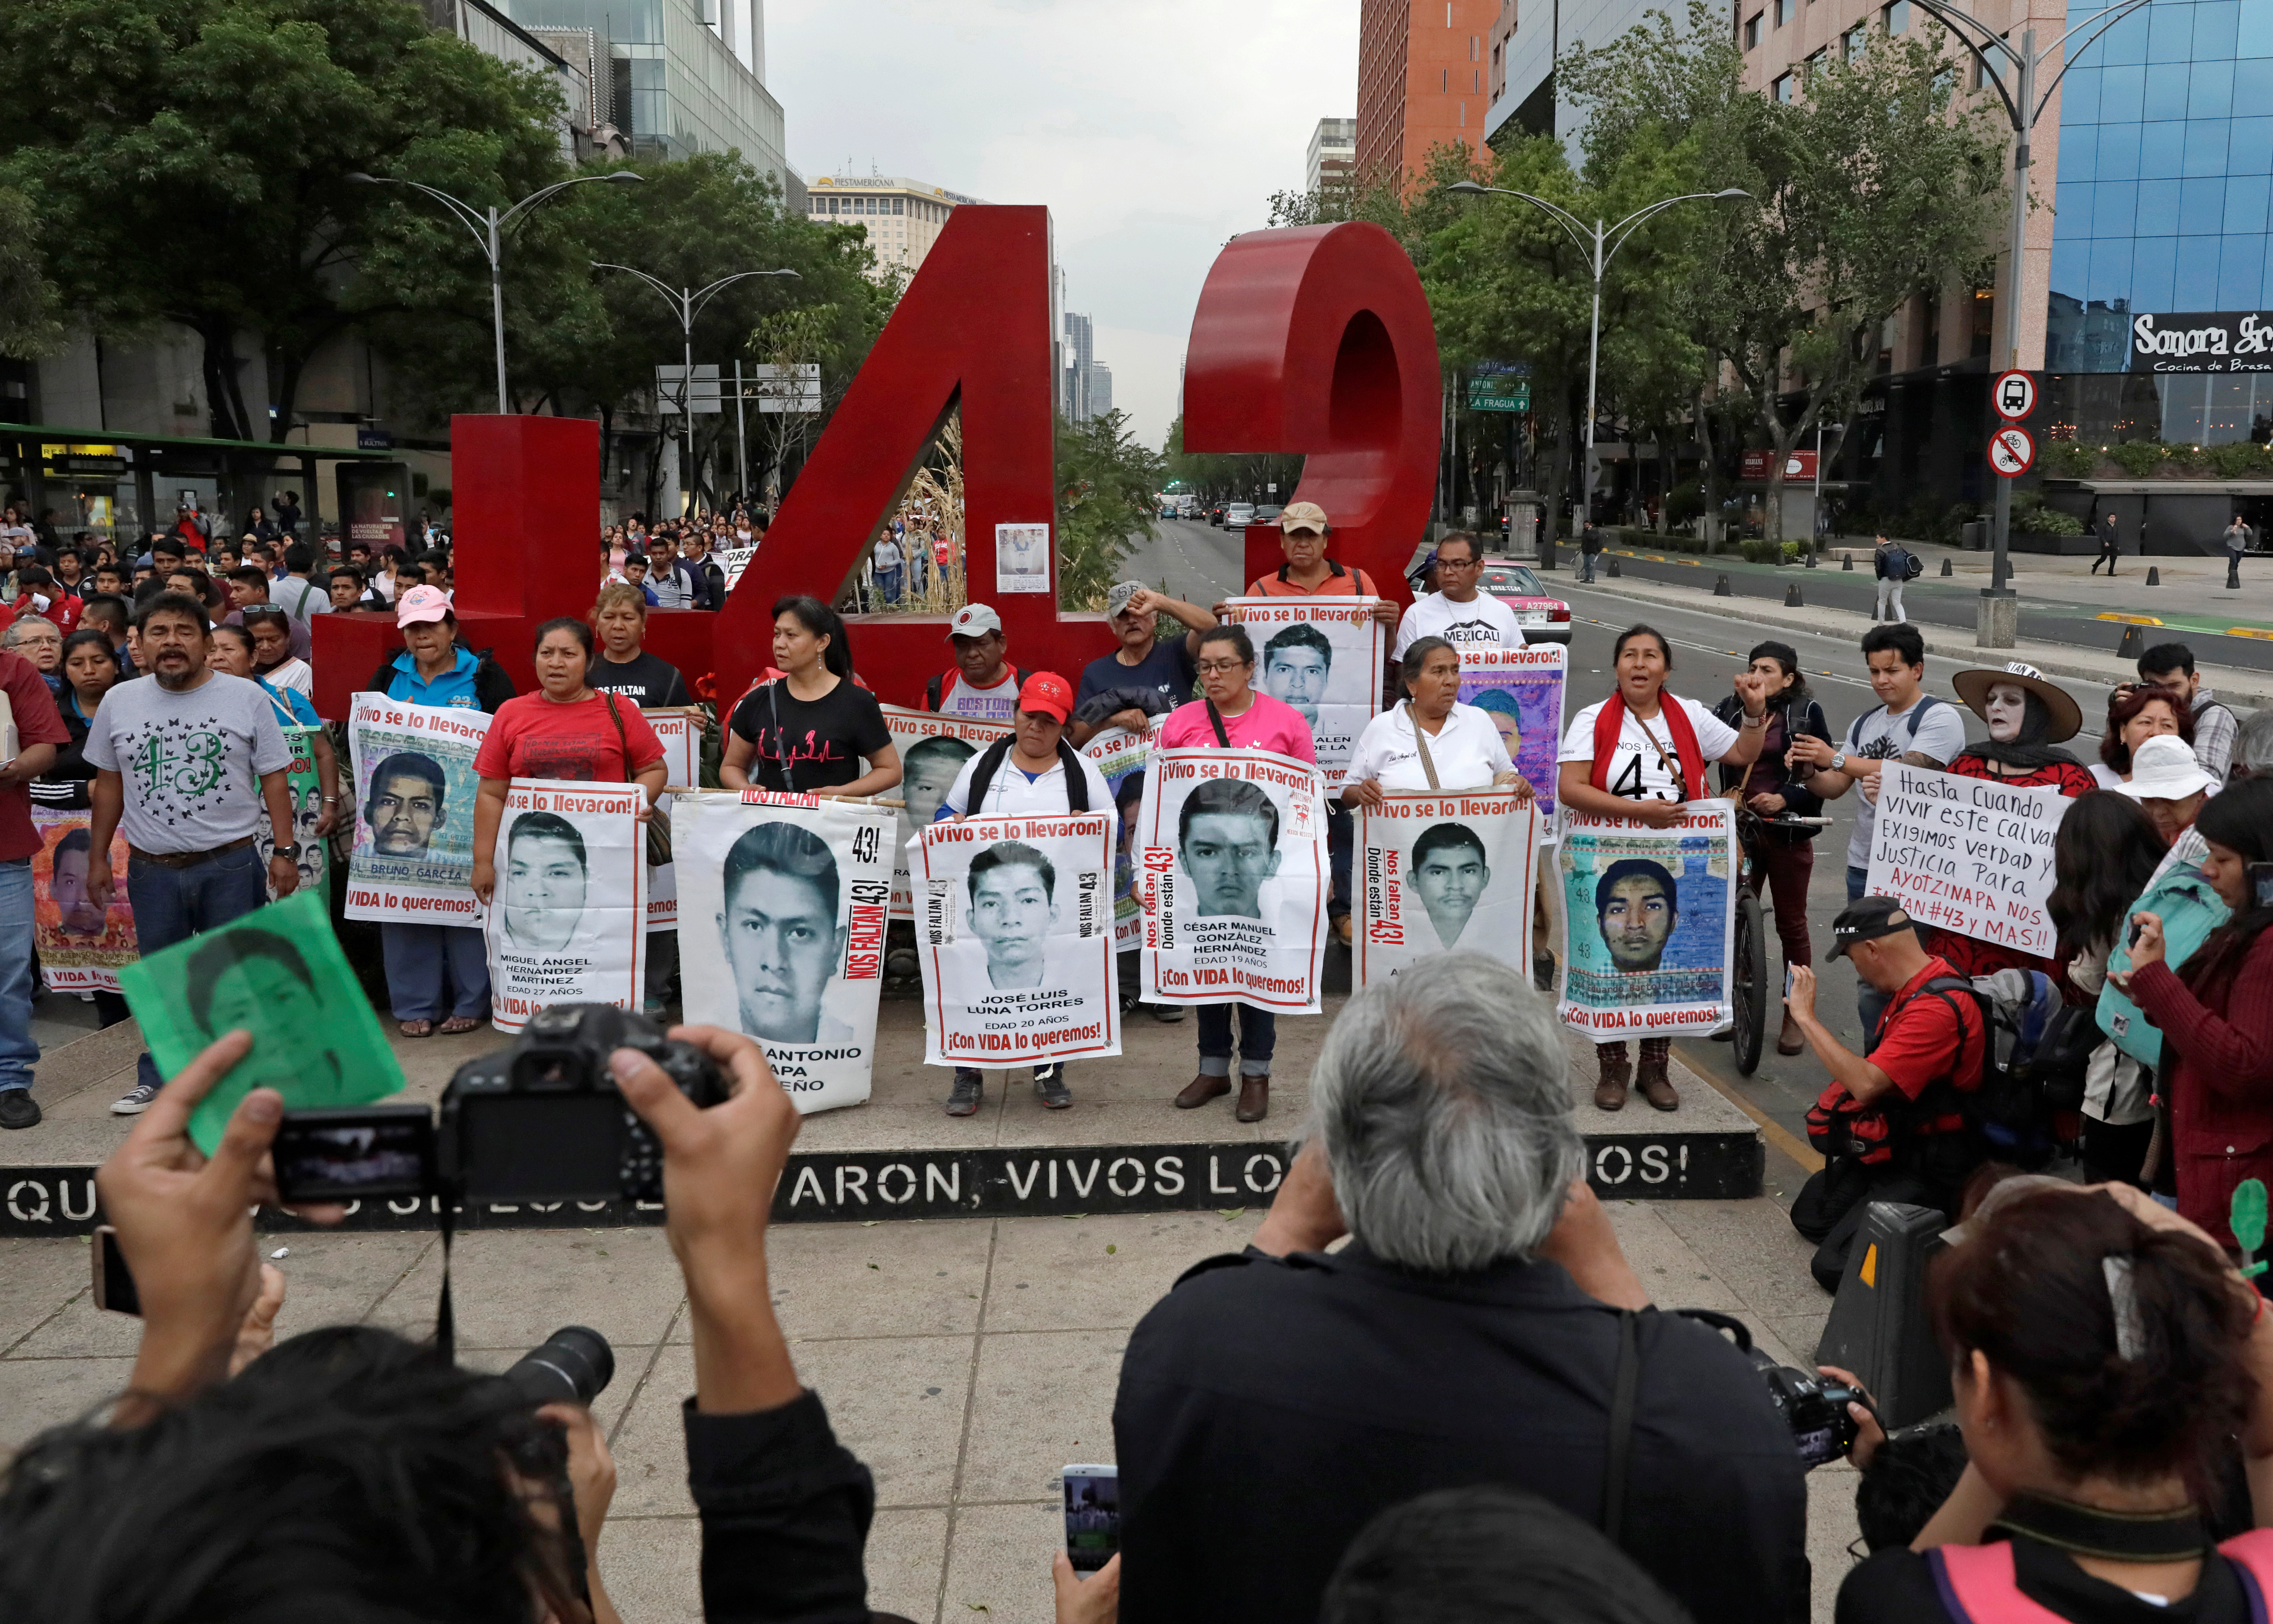 FILE PHOTO: Relatives pose with images of some of the 43 missing Ayotzinapa College Raul Isidro Burgos students in front of a monument of the number 43, during a march to mark the 41st month since their disappearance in the state of Guerrero, in Mexico City, Mexico February 26, 2018. REUTERS/Henry Romero